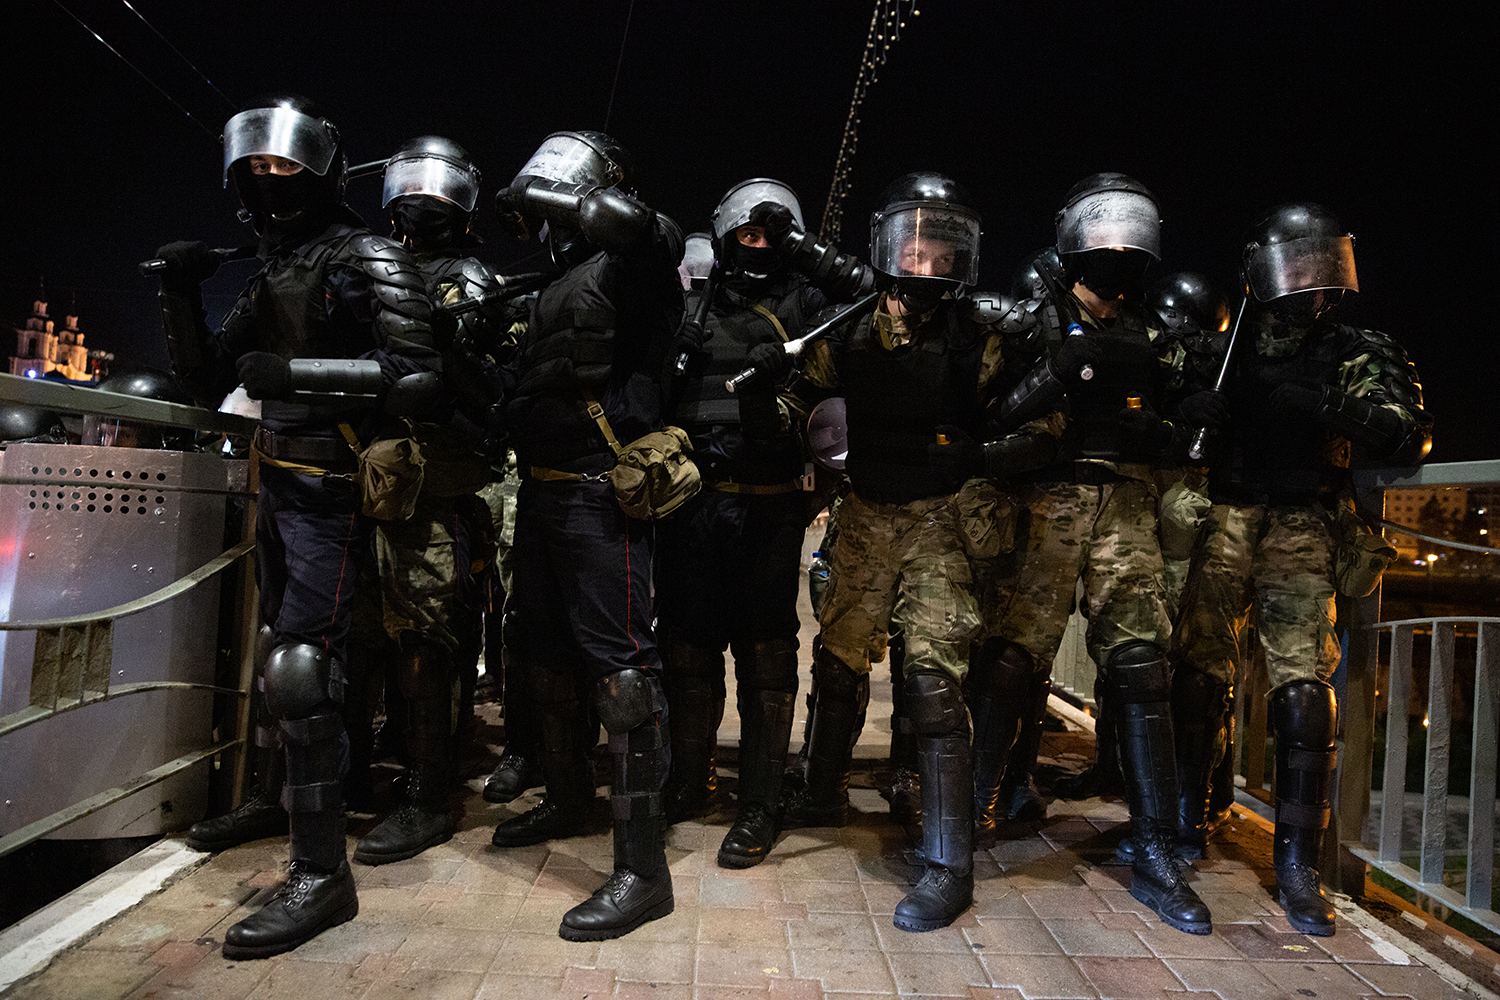 Riot police brace for impact as they square off with protesters in Minsk on Aug. 9.